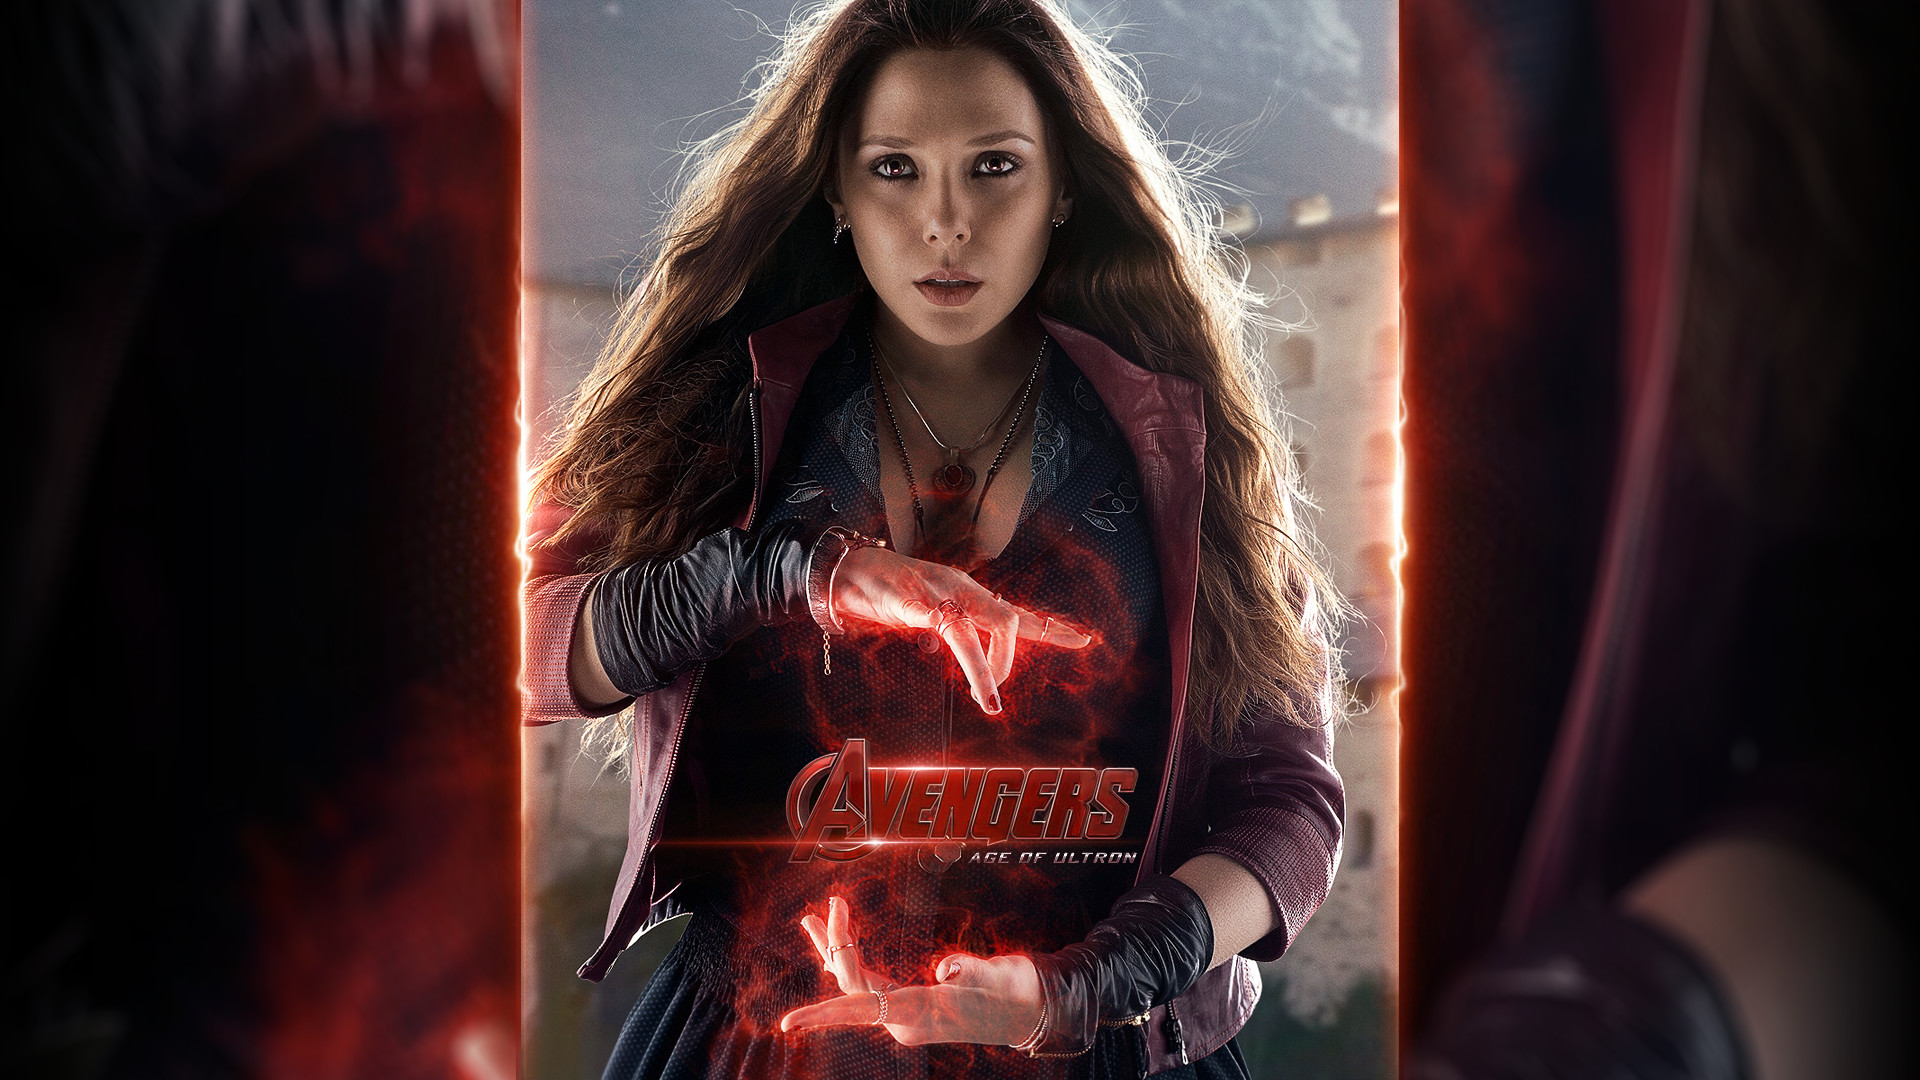 Avengers – Age Of Ultron: Scarlet Witch. Scarlet Witch Wallpaper 1920×1080